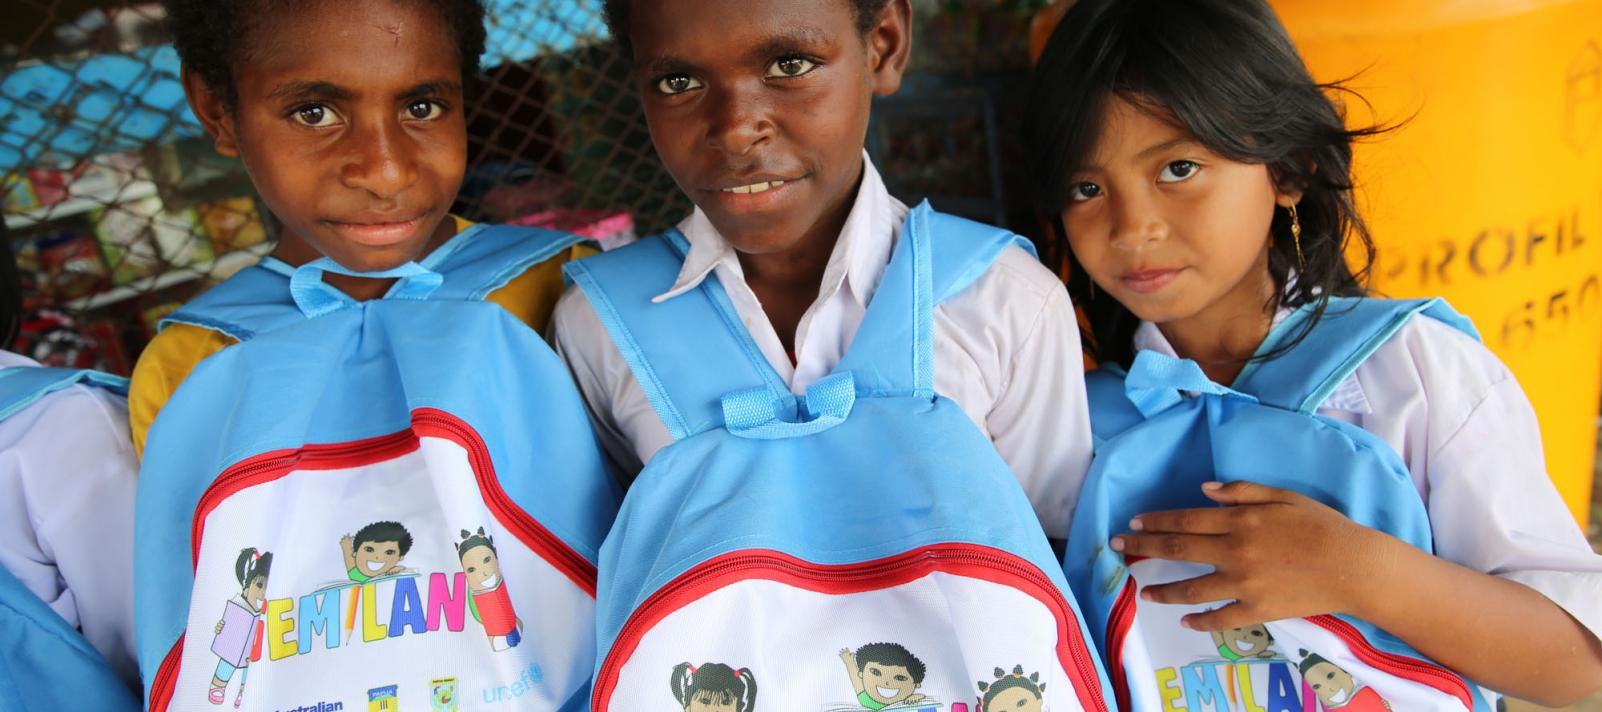 Three children posing with their school bags.